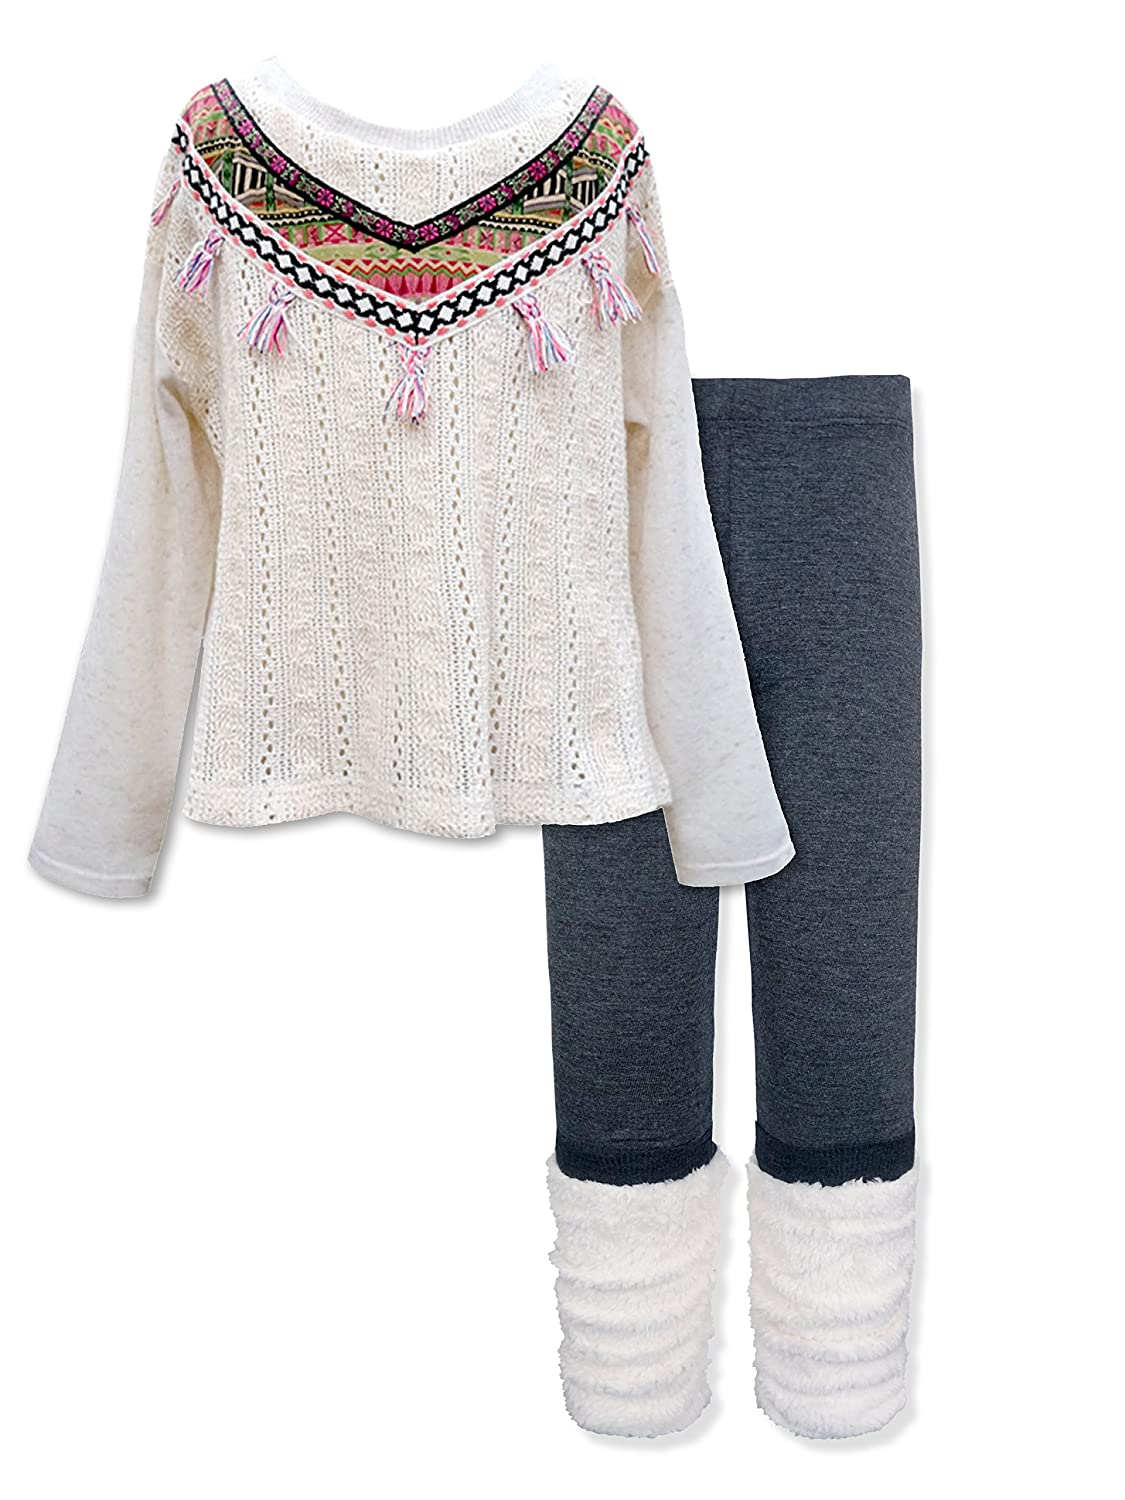 Truly Me, Big Girls Outerwear Jackets, Cardigans, Sweaters (Many Options), 7-16 TM0123456